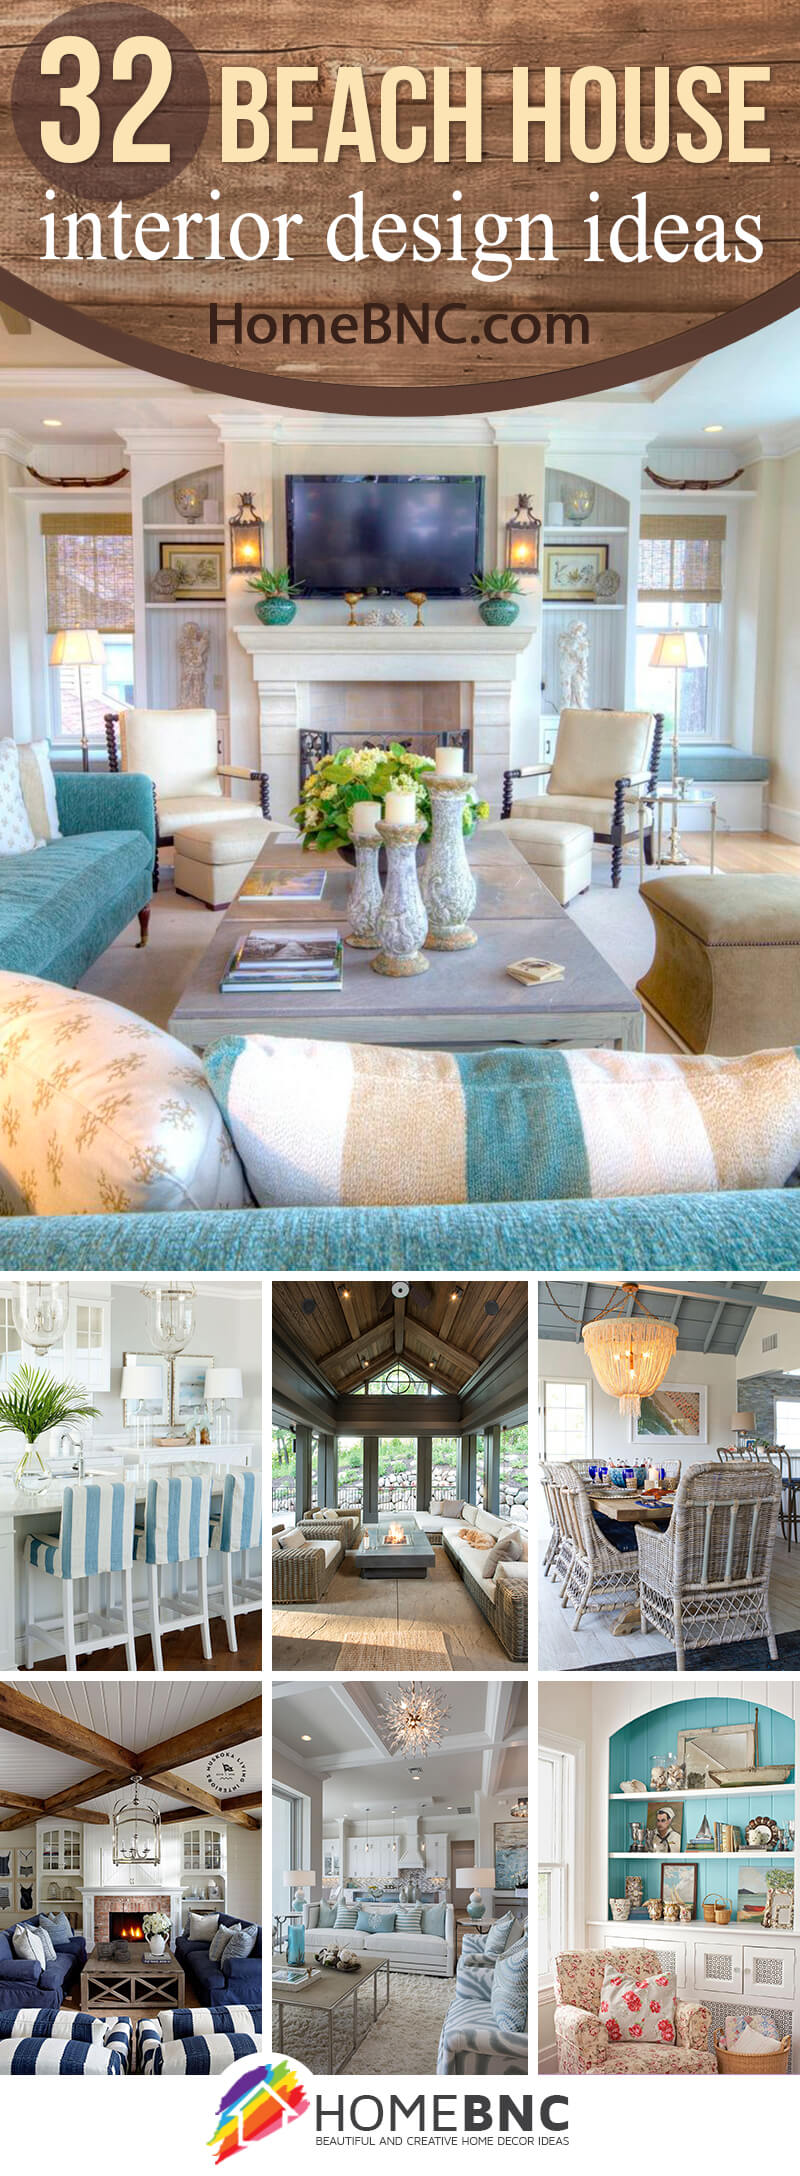 32 Adorable Beach House Interior Design Ideas To Brighten Your Décor